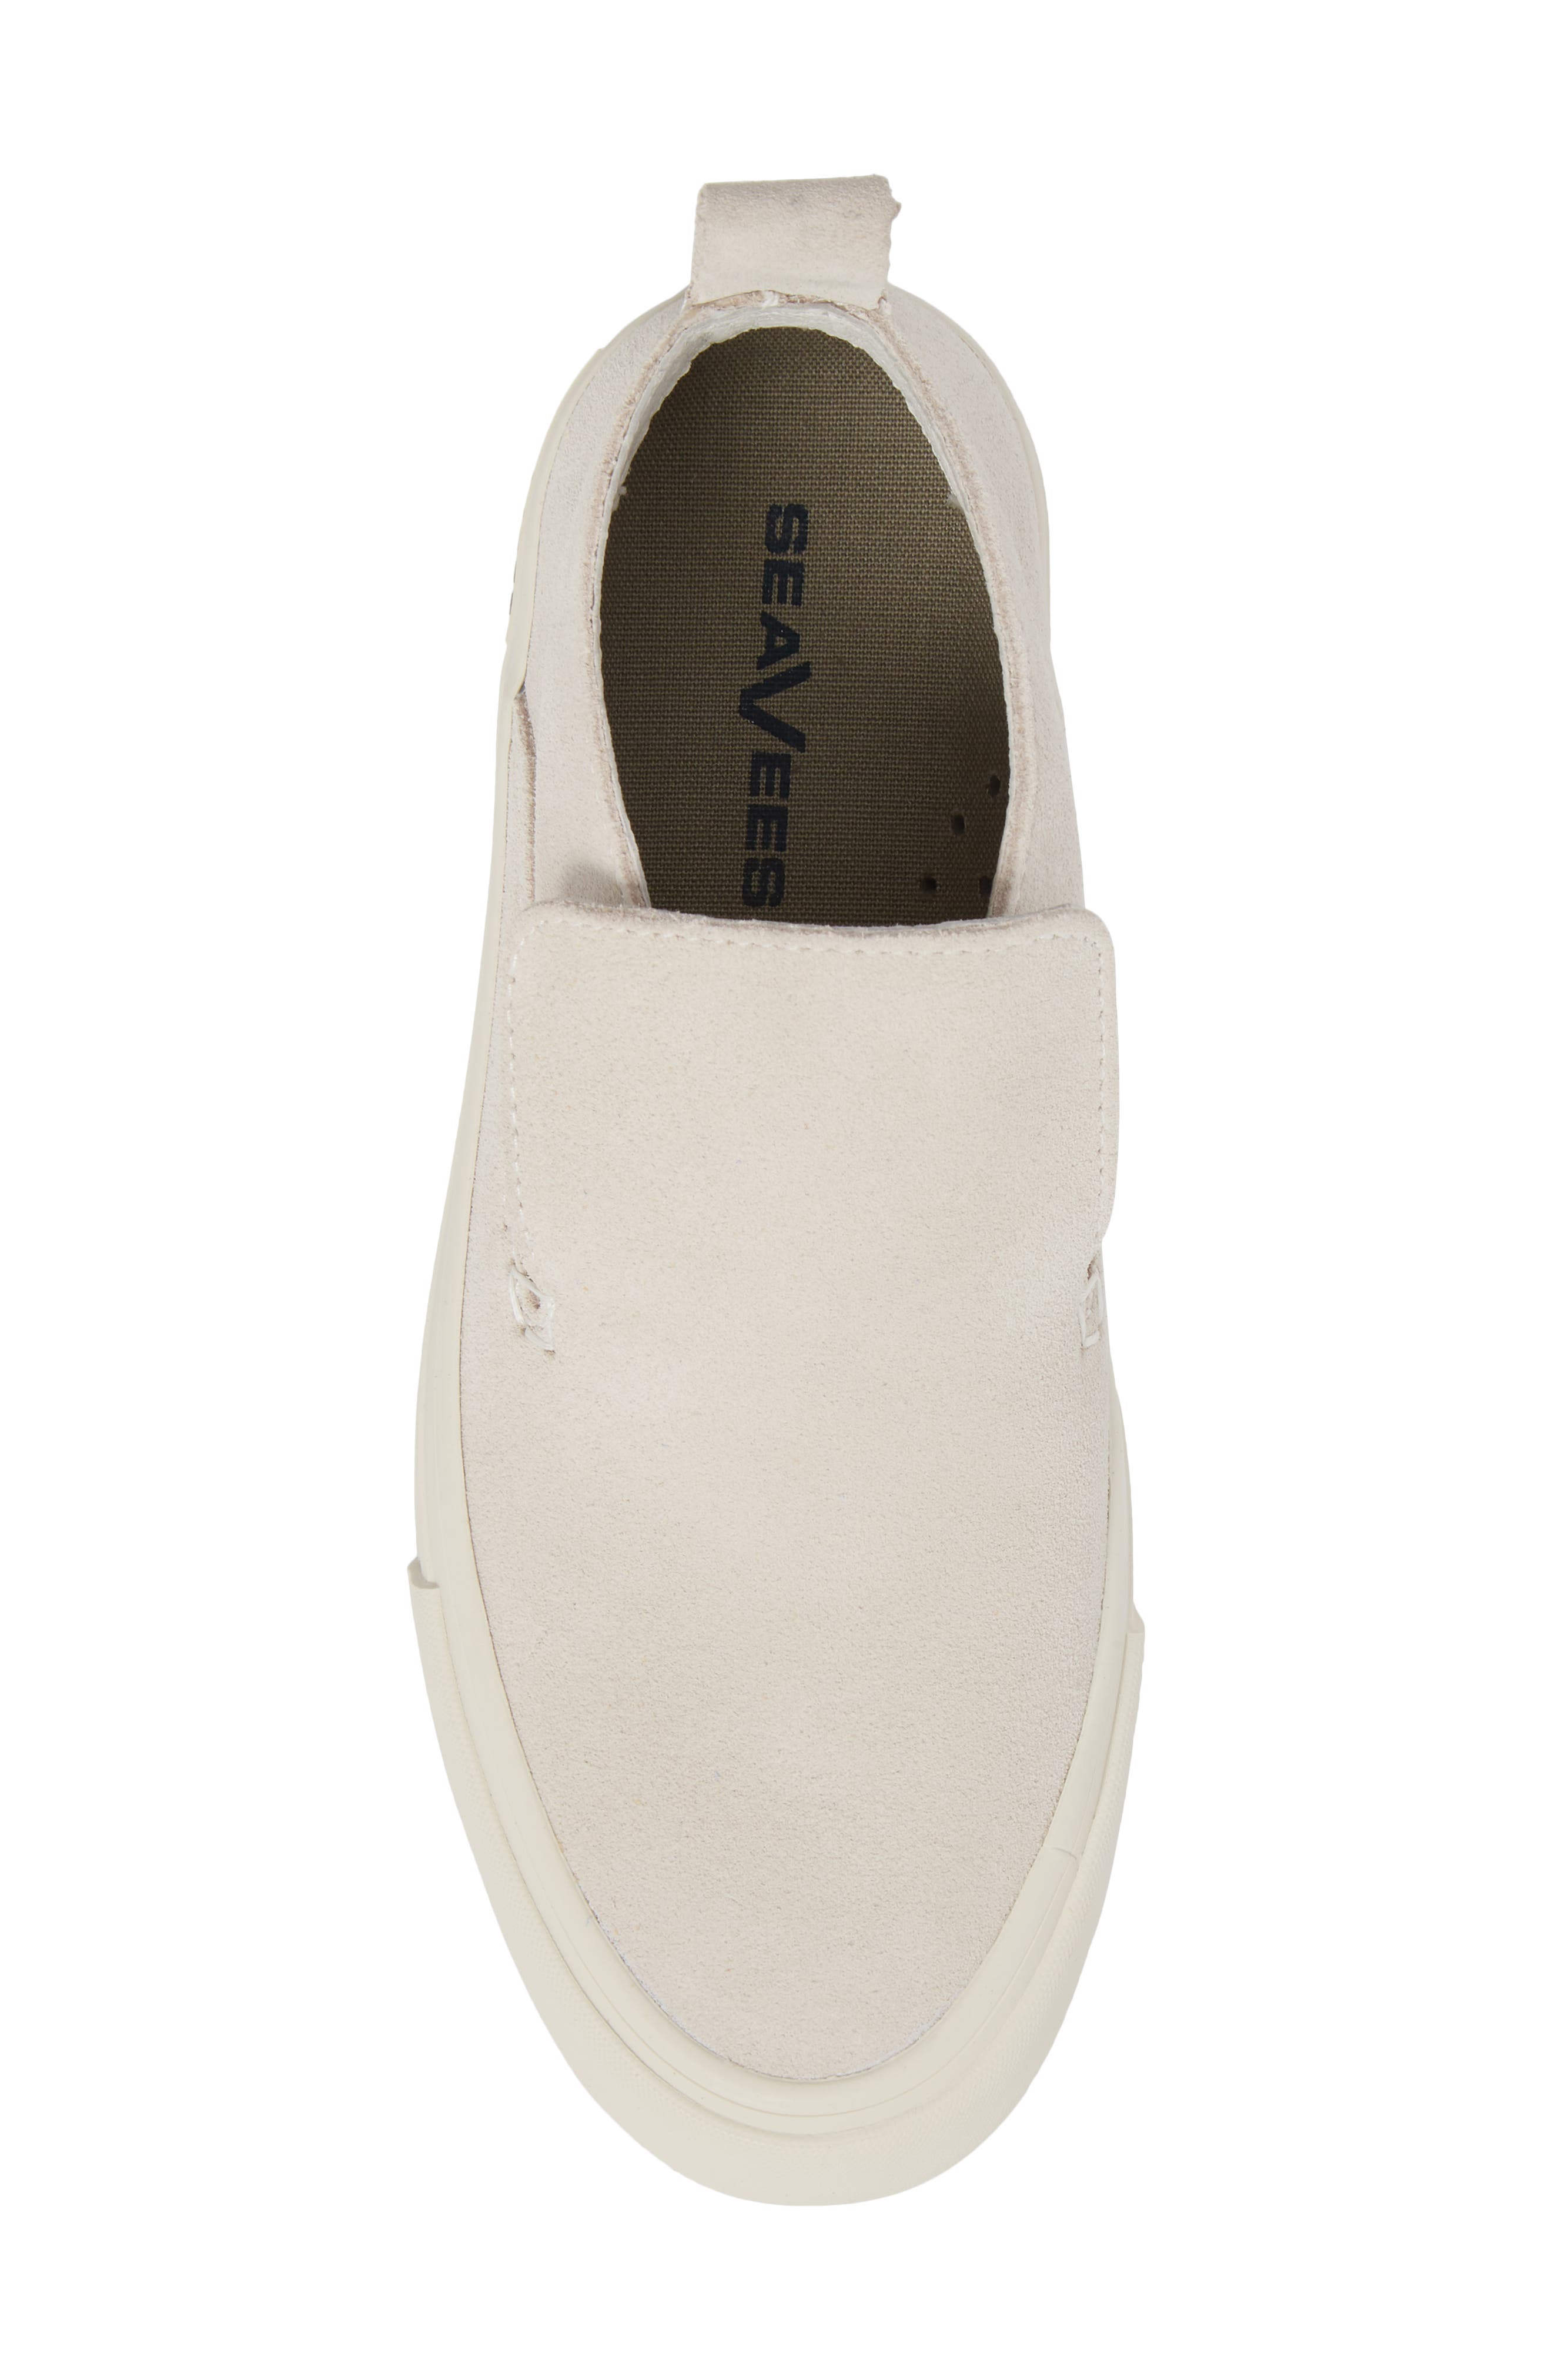 Huntington Middie Slip-On Sneaker,                             Alternate thumbnail 5, color,                             OYSTER